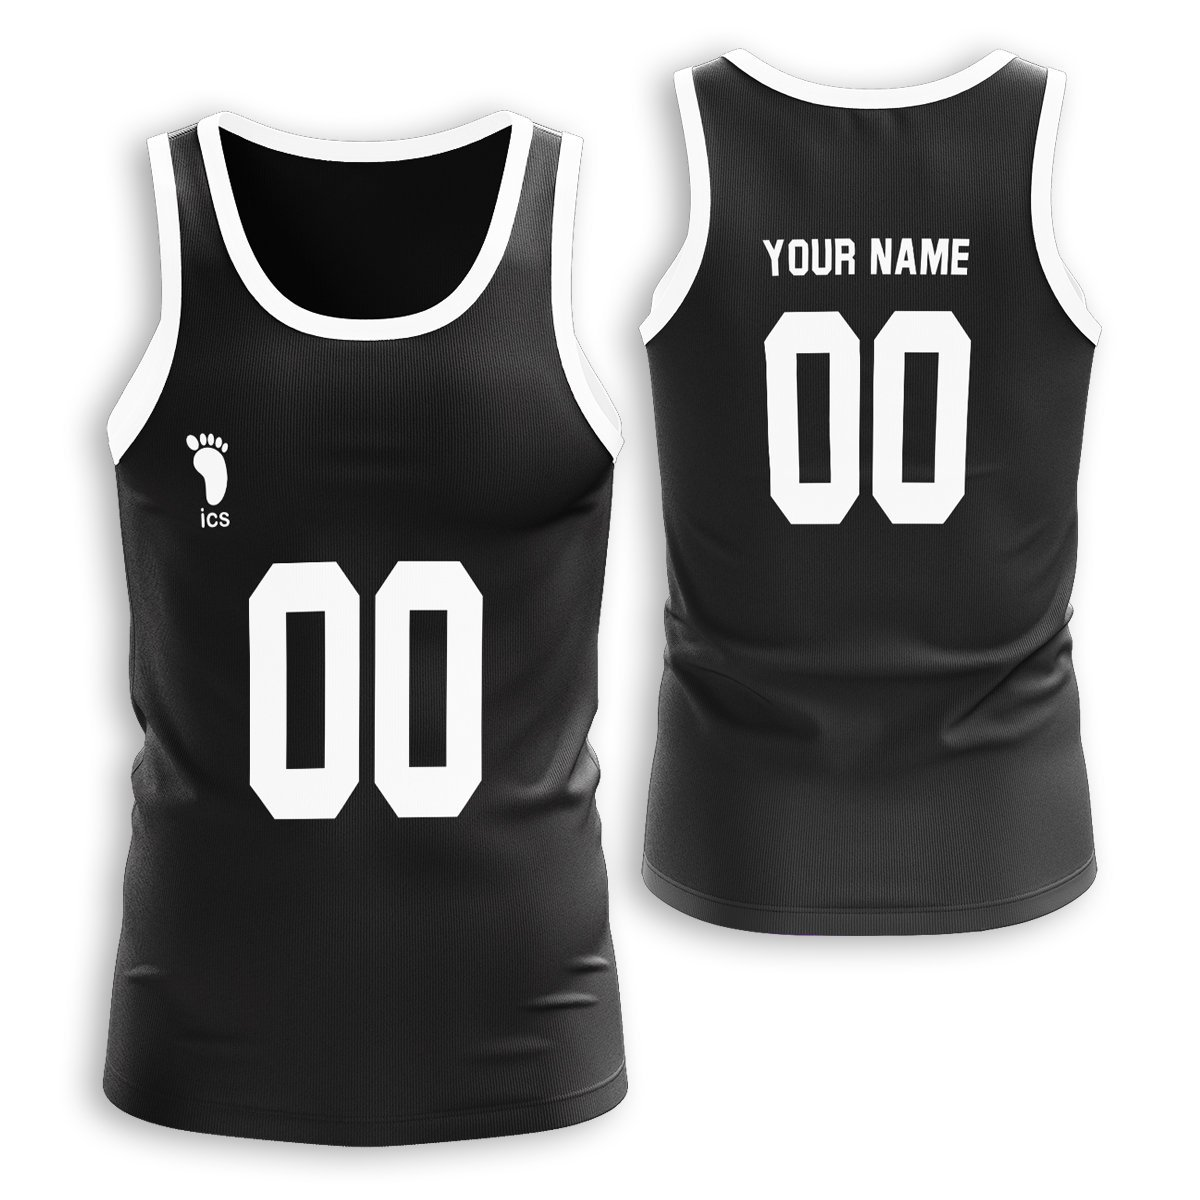 Personalized Team Inarizaki Unisex Tank Tops FDM3107 S Official Anime Swimsuit Merch